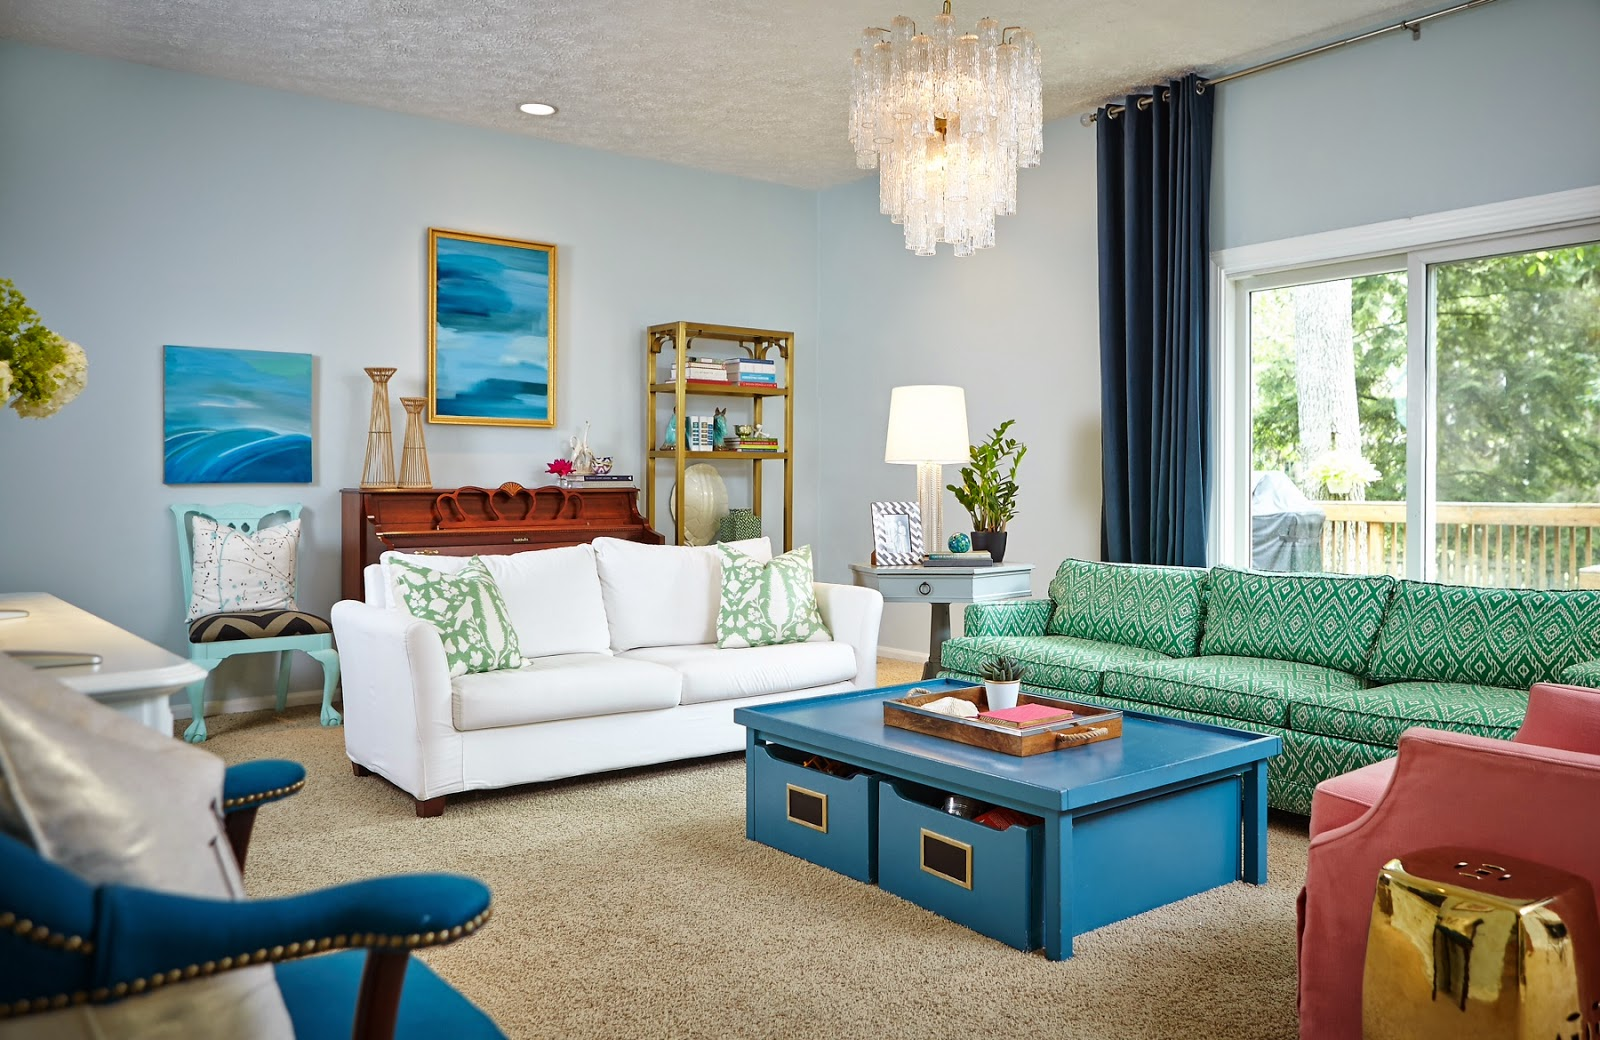 Home Decorating Abby M Interiors Update Home Tour Pink Green and Blue Living Room Design